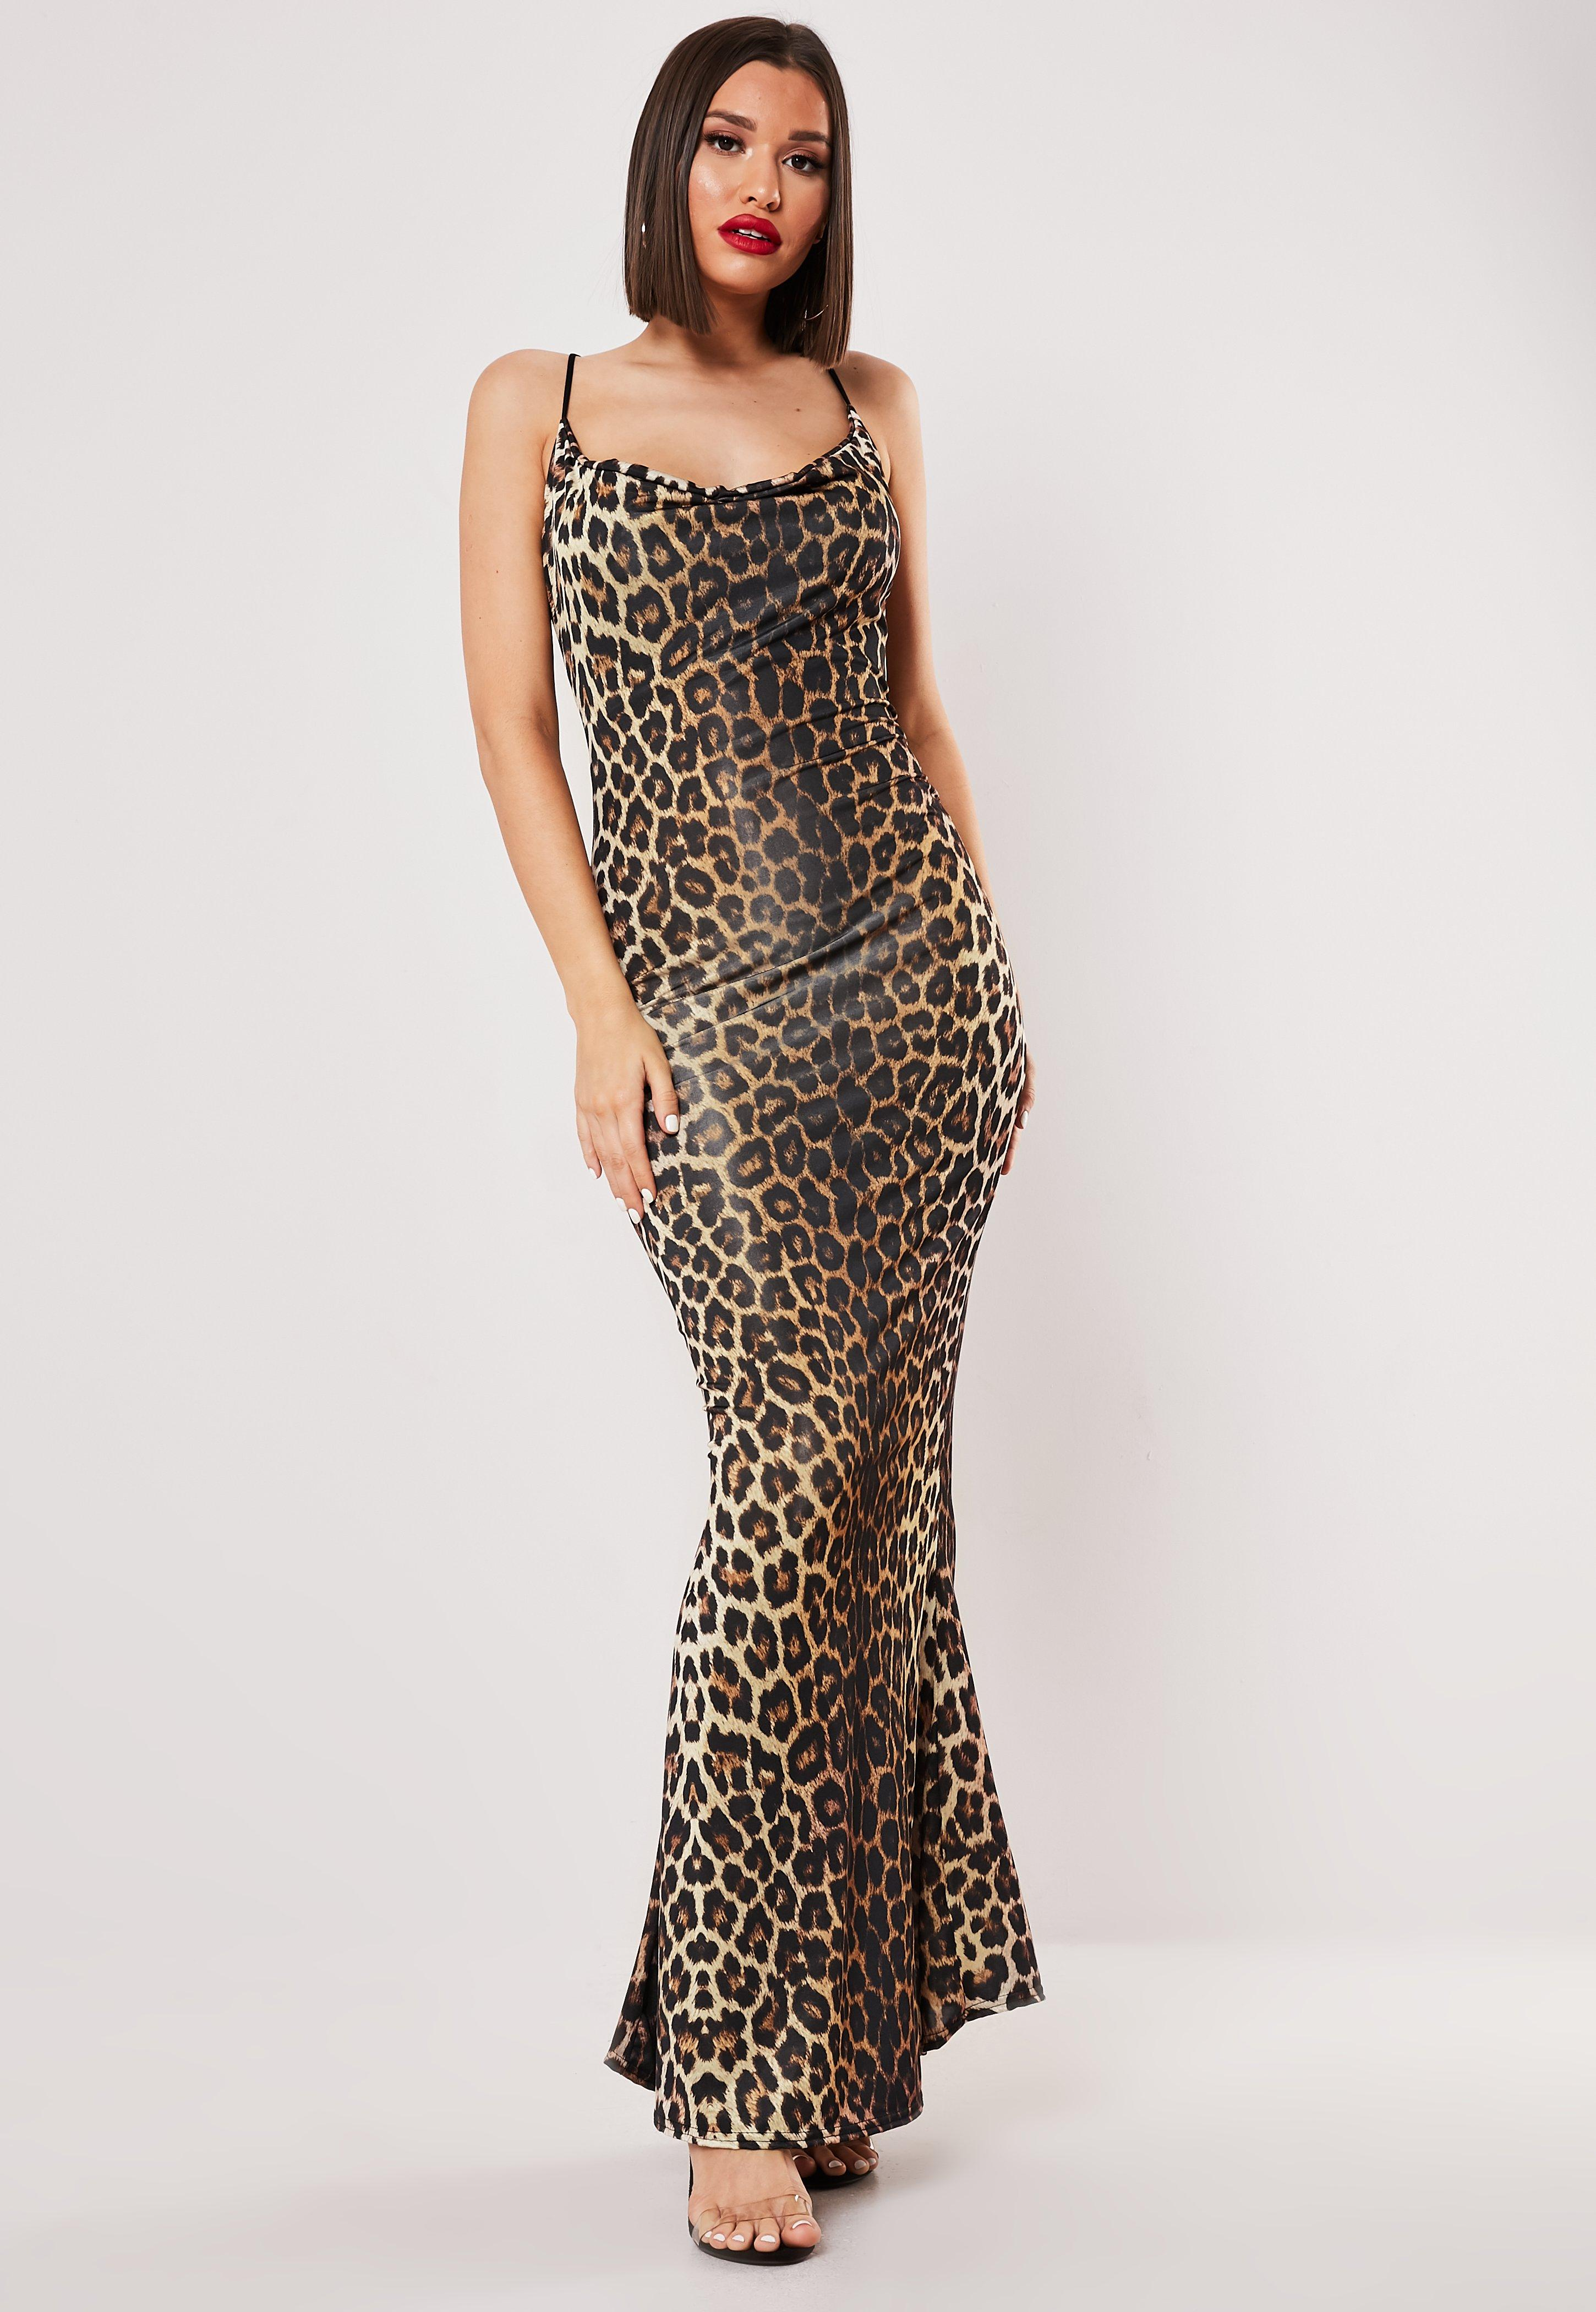 515500f9bb81 Animal Print Clothing | Animal Print Dresses & Tops - Missguided